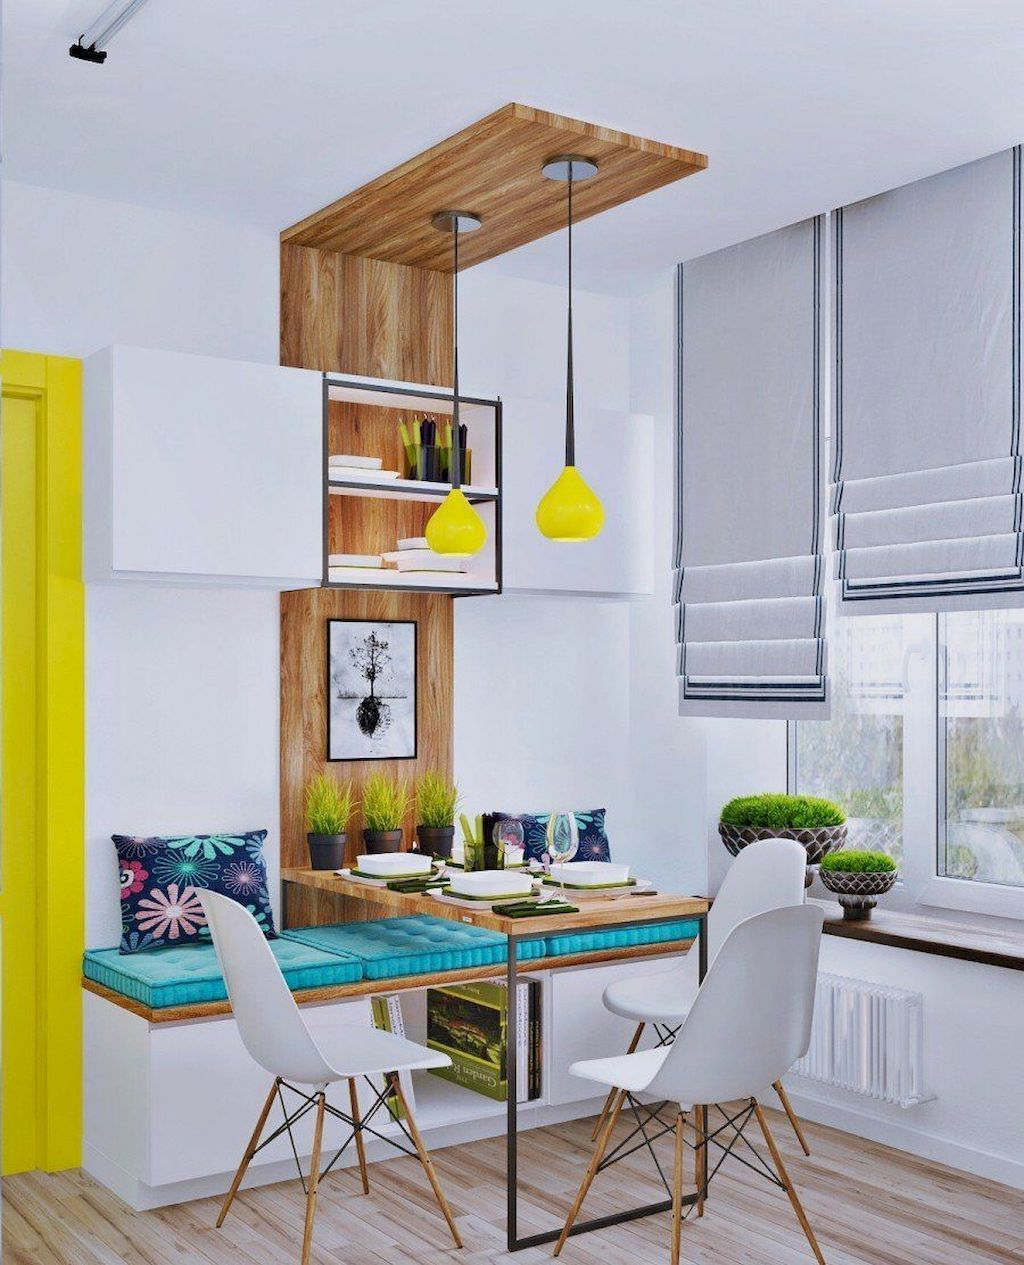 75 Beautiful Small Dining Room Design Ideas Spaciroom Com Dining Room Interiors Dining Room Small Dining Room Layout